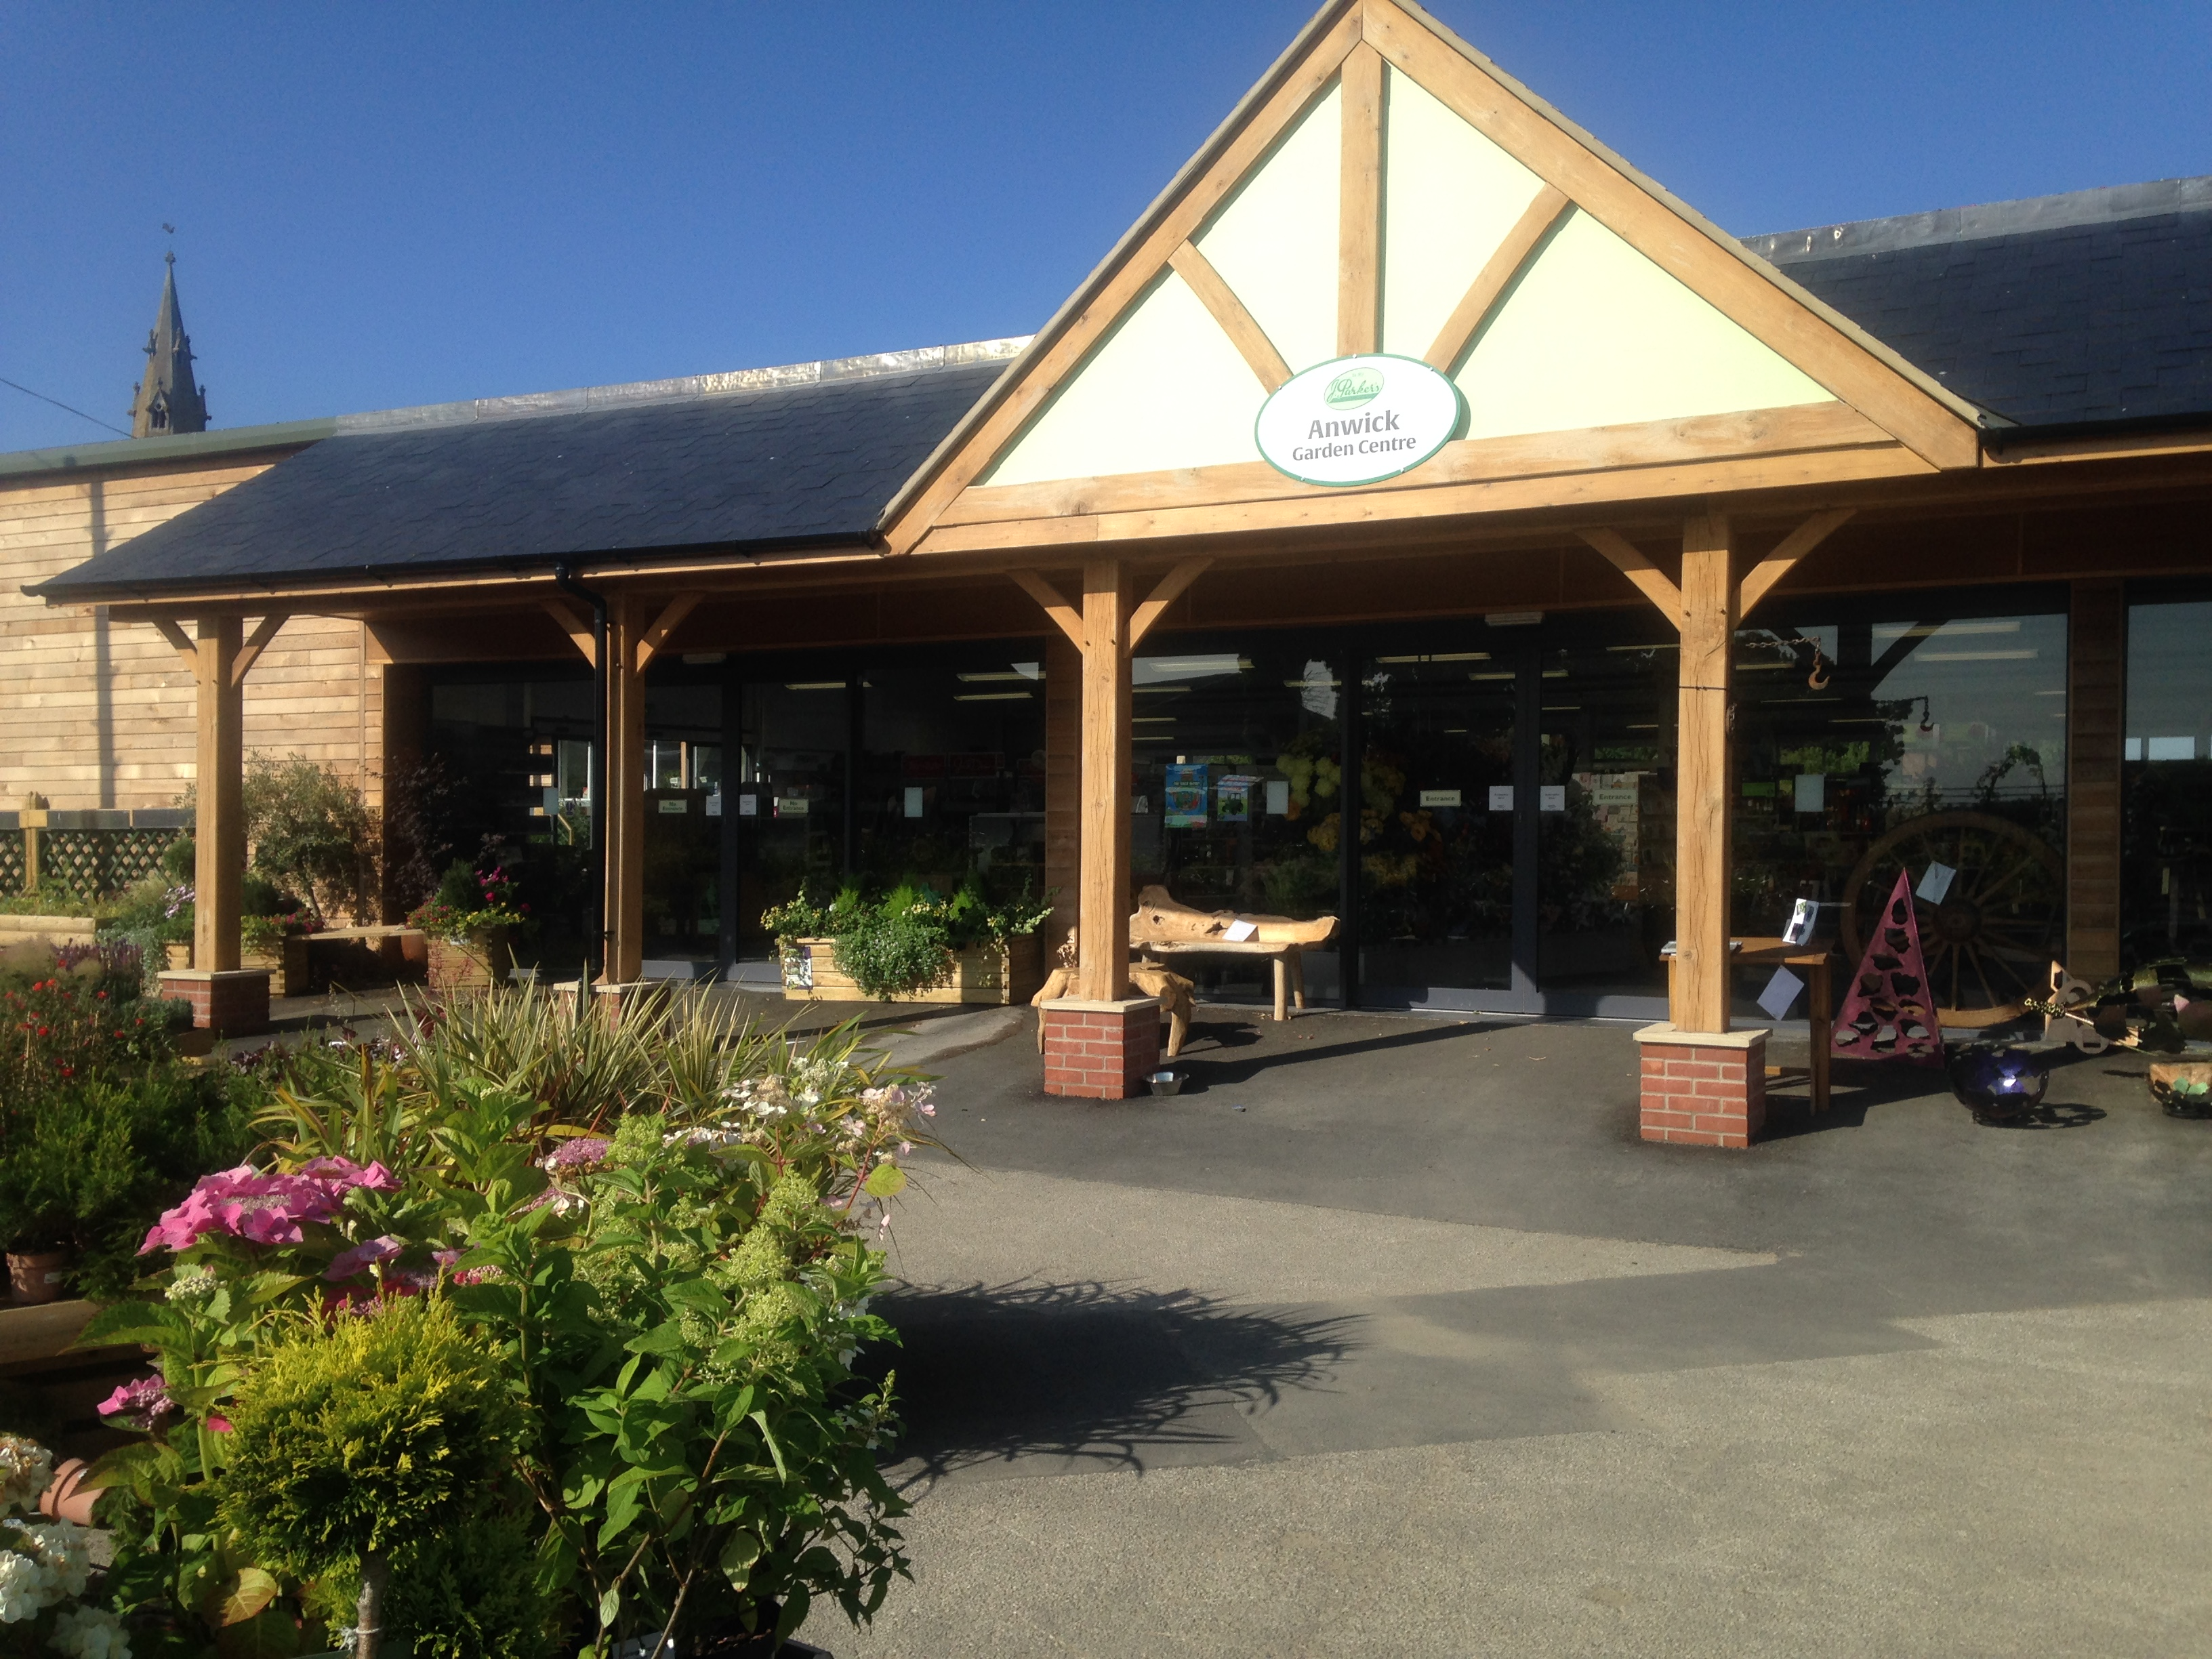 Garden Centre: Anwick Garden Centre. Great Value Garden Products And Plants